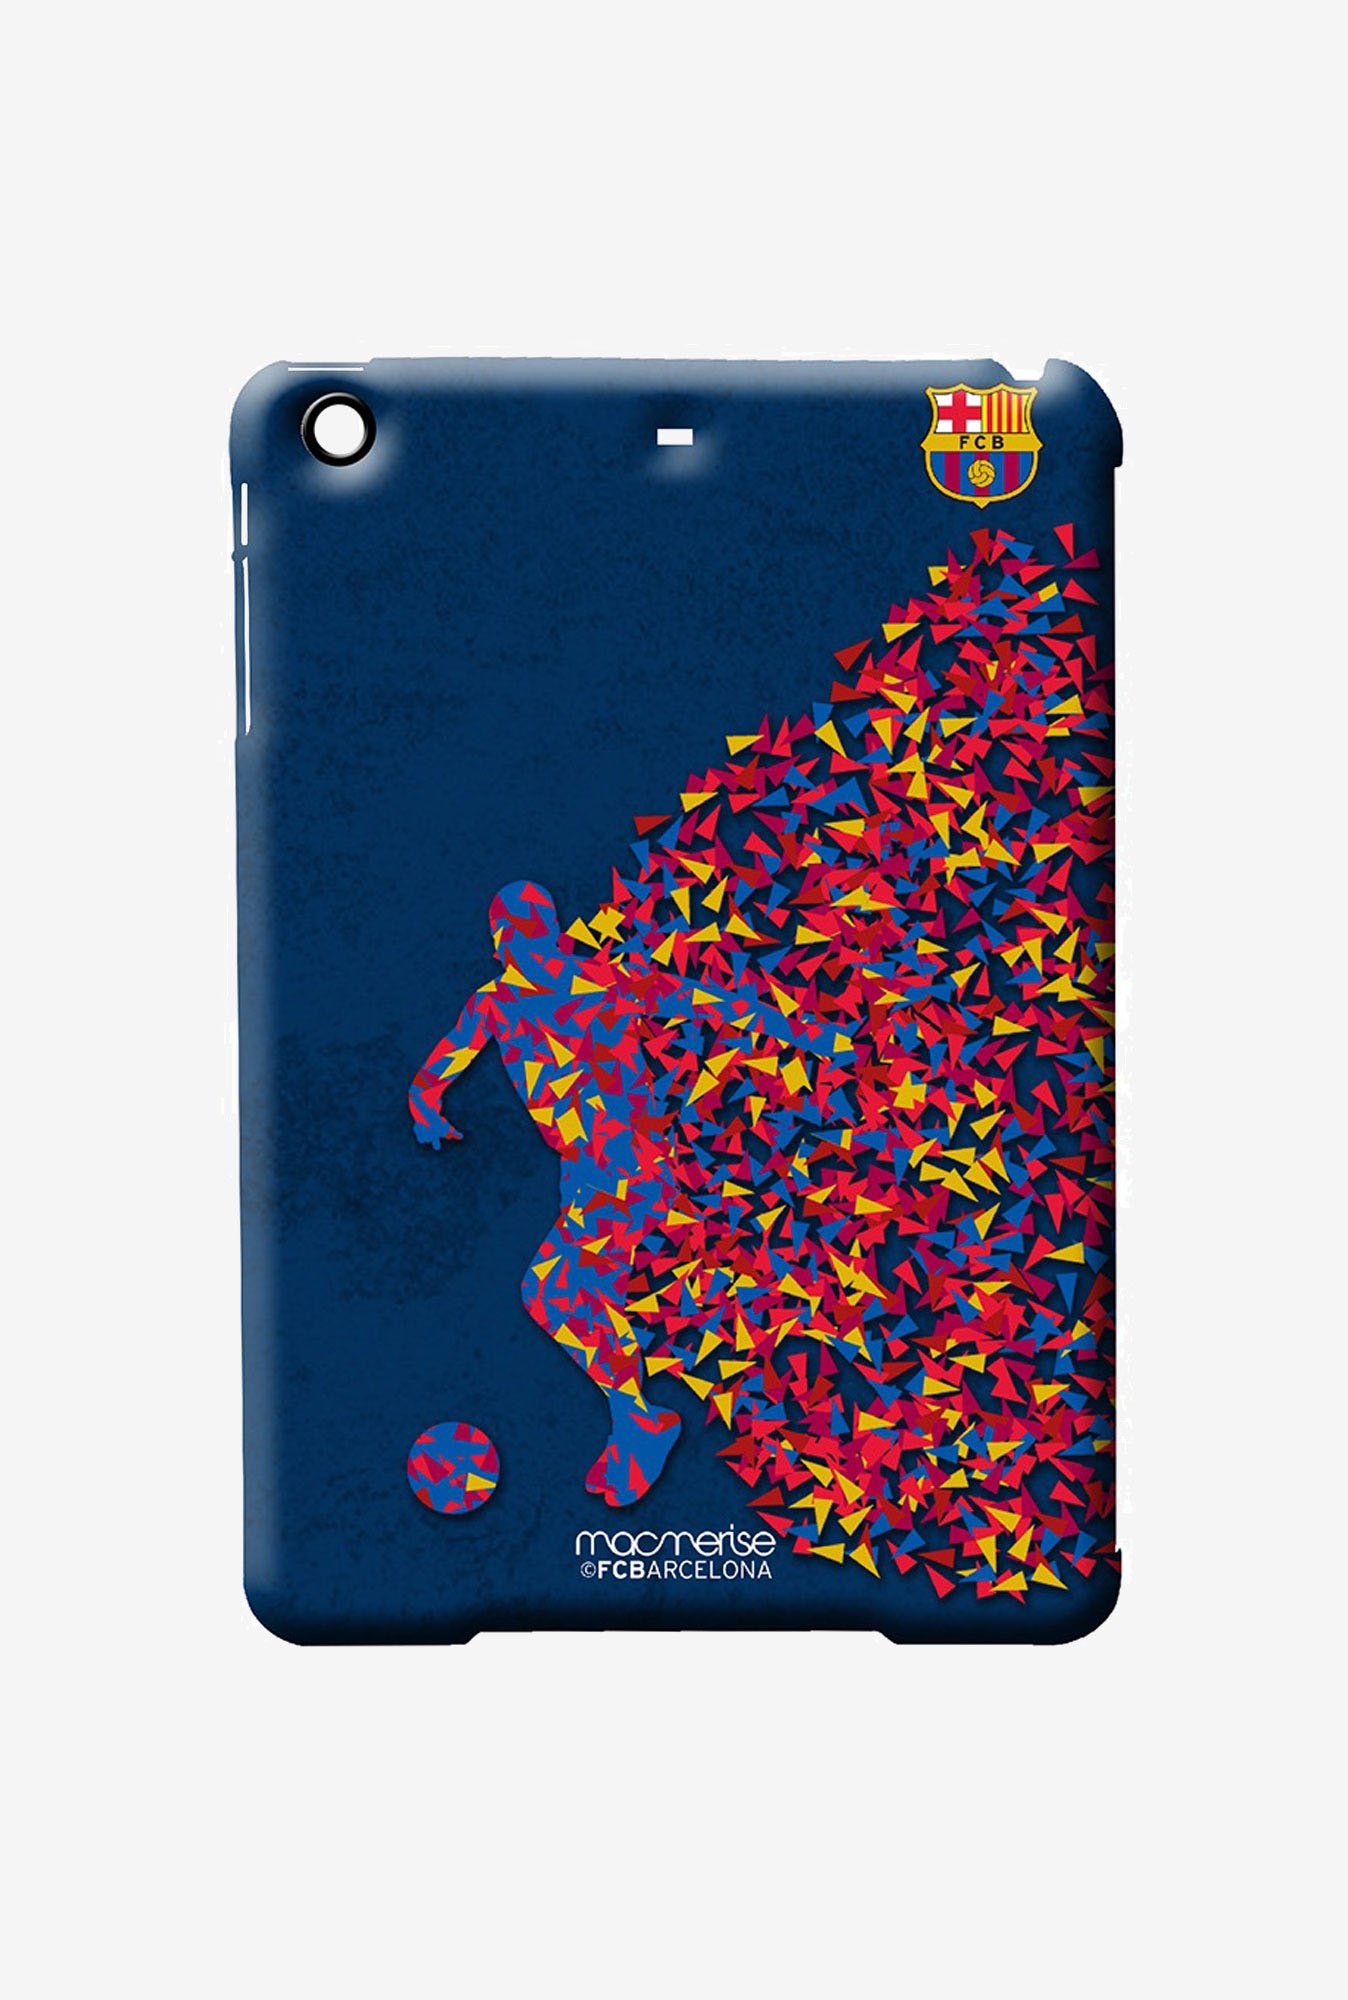 Macmerise FCB Asymmetrical Art Pro Case for iPad Air 2